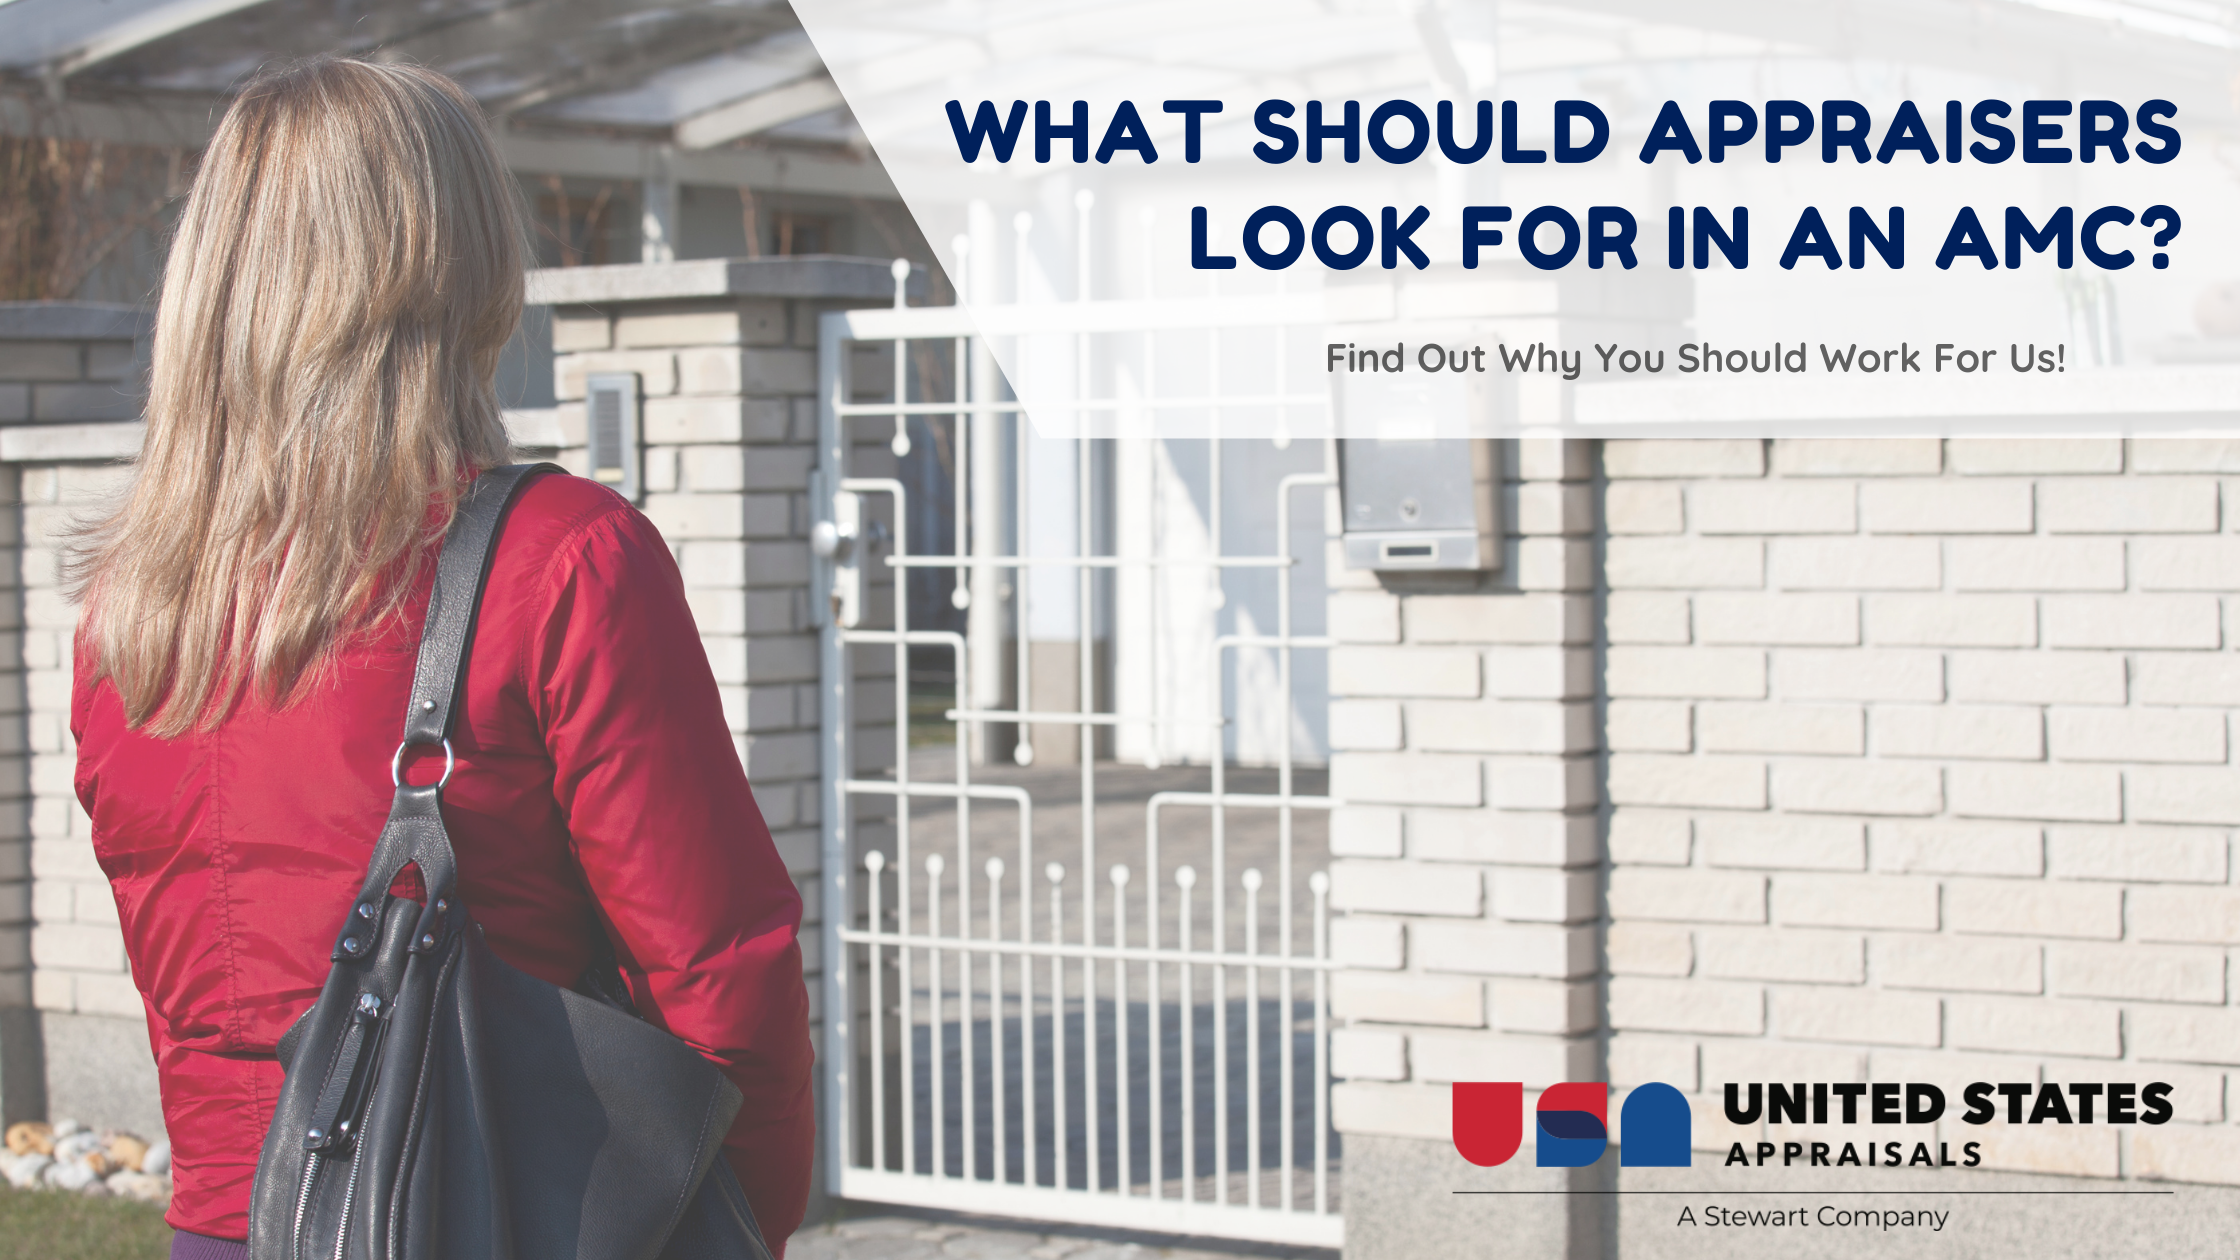 What Should Appraisers Look For in an AMC?